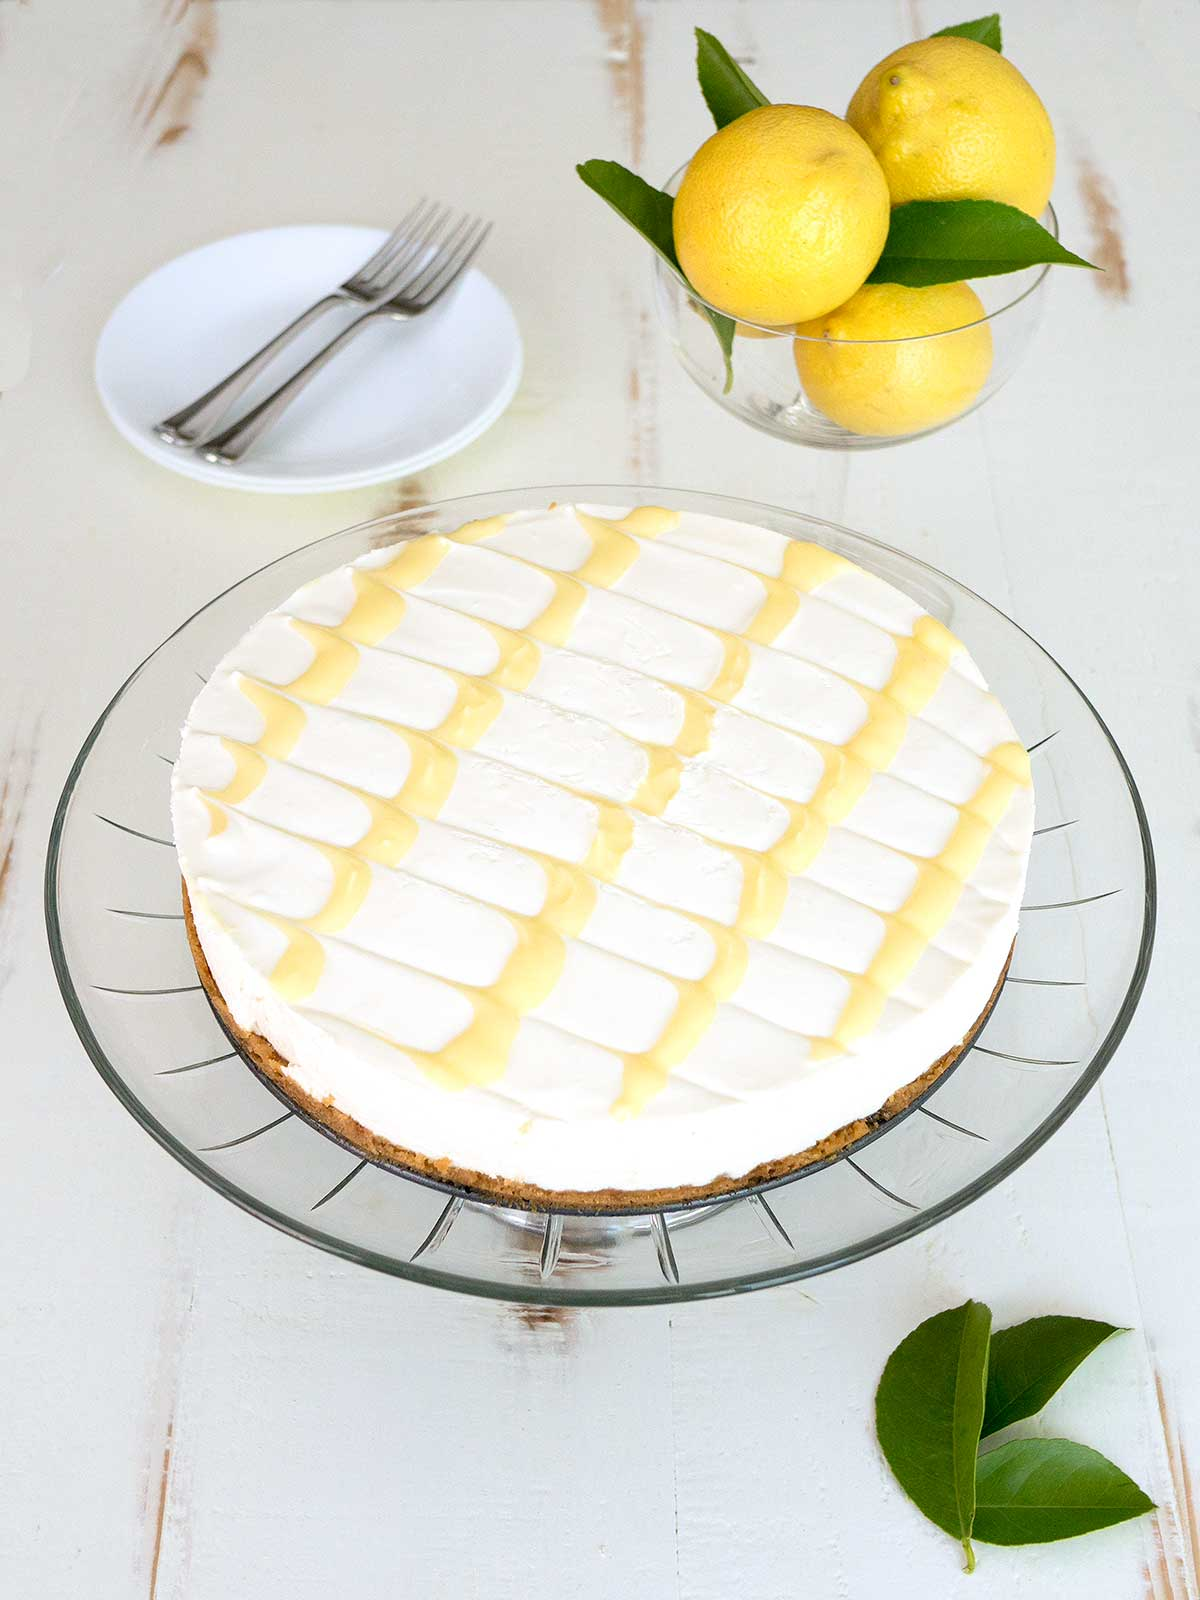 Cheesecake Topped with Lemon Curd on Glass Plate.